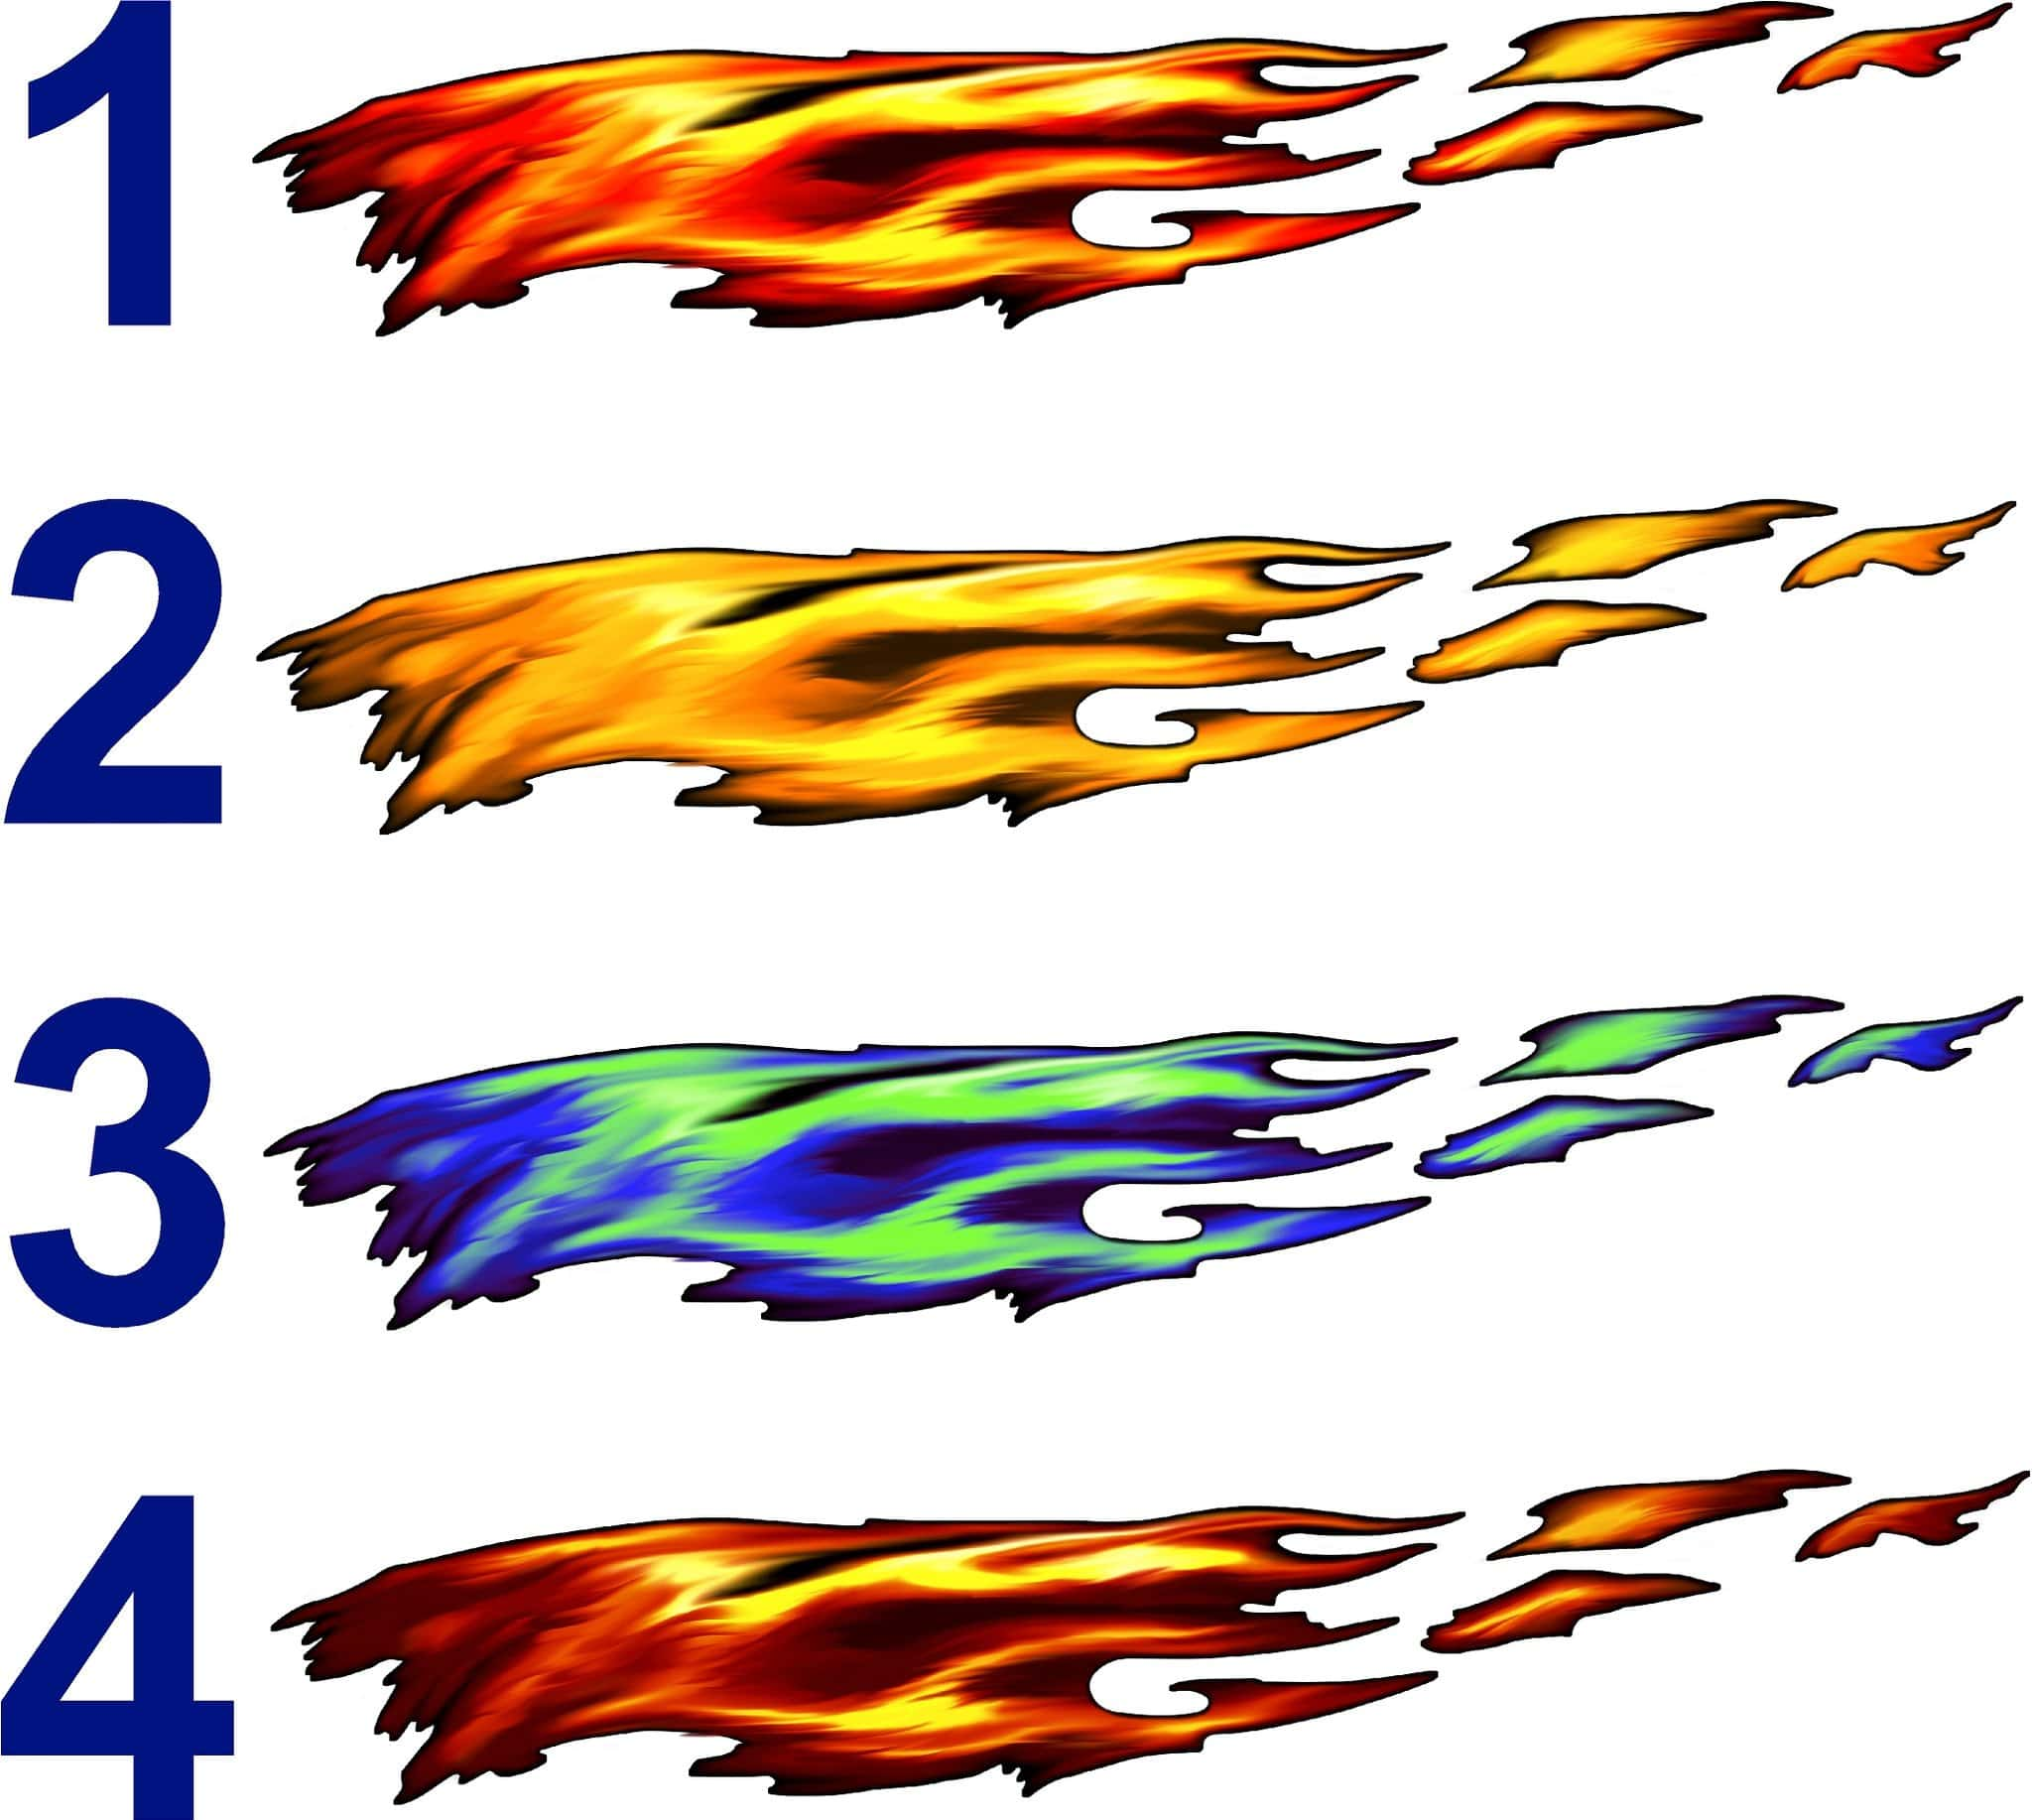 Car sticker design fire -  Decal Kit Full Color Fire Flame Variations